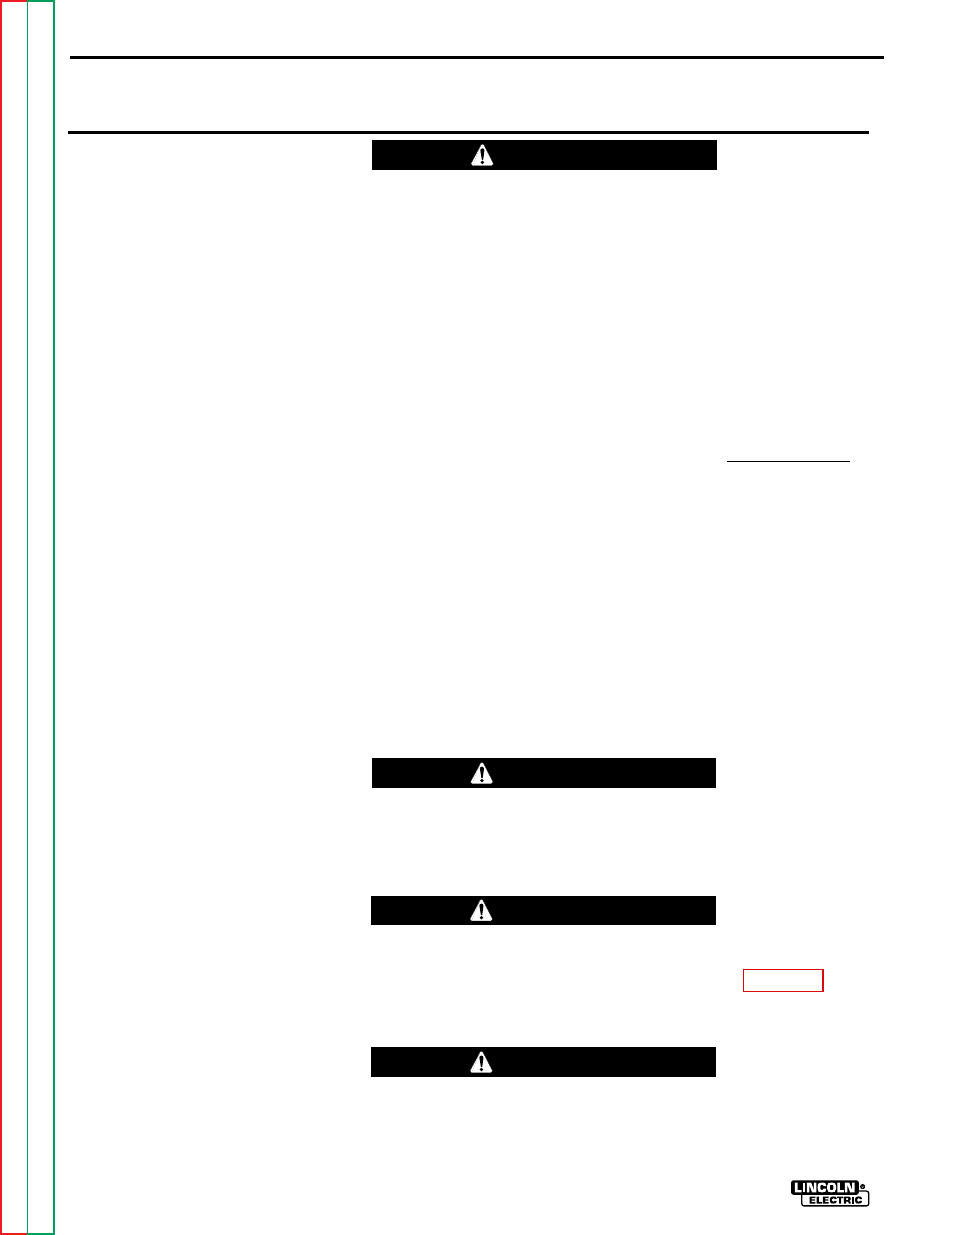 Troubleshooting Repair How To Use Guide Caution Electrical Wiring Lincoln Electric Square Wave Tig 255 Svm100 A User Manual Page 42 100